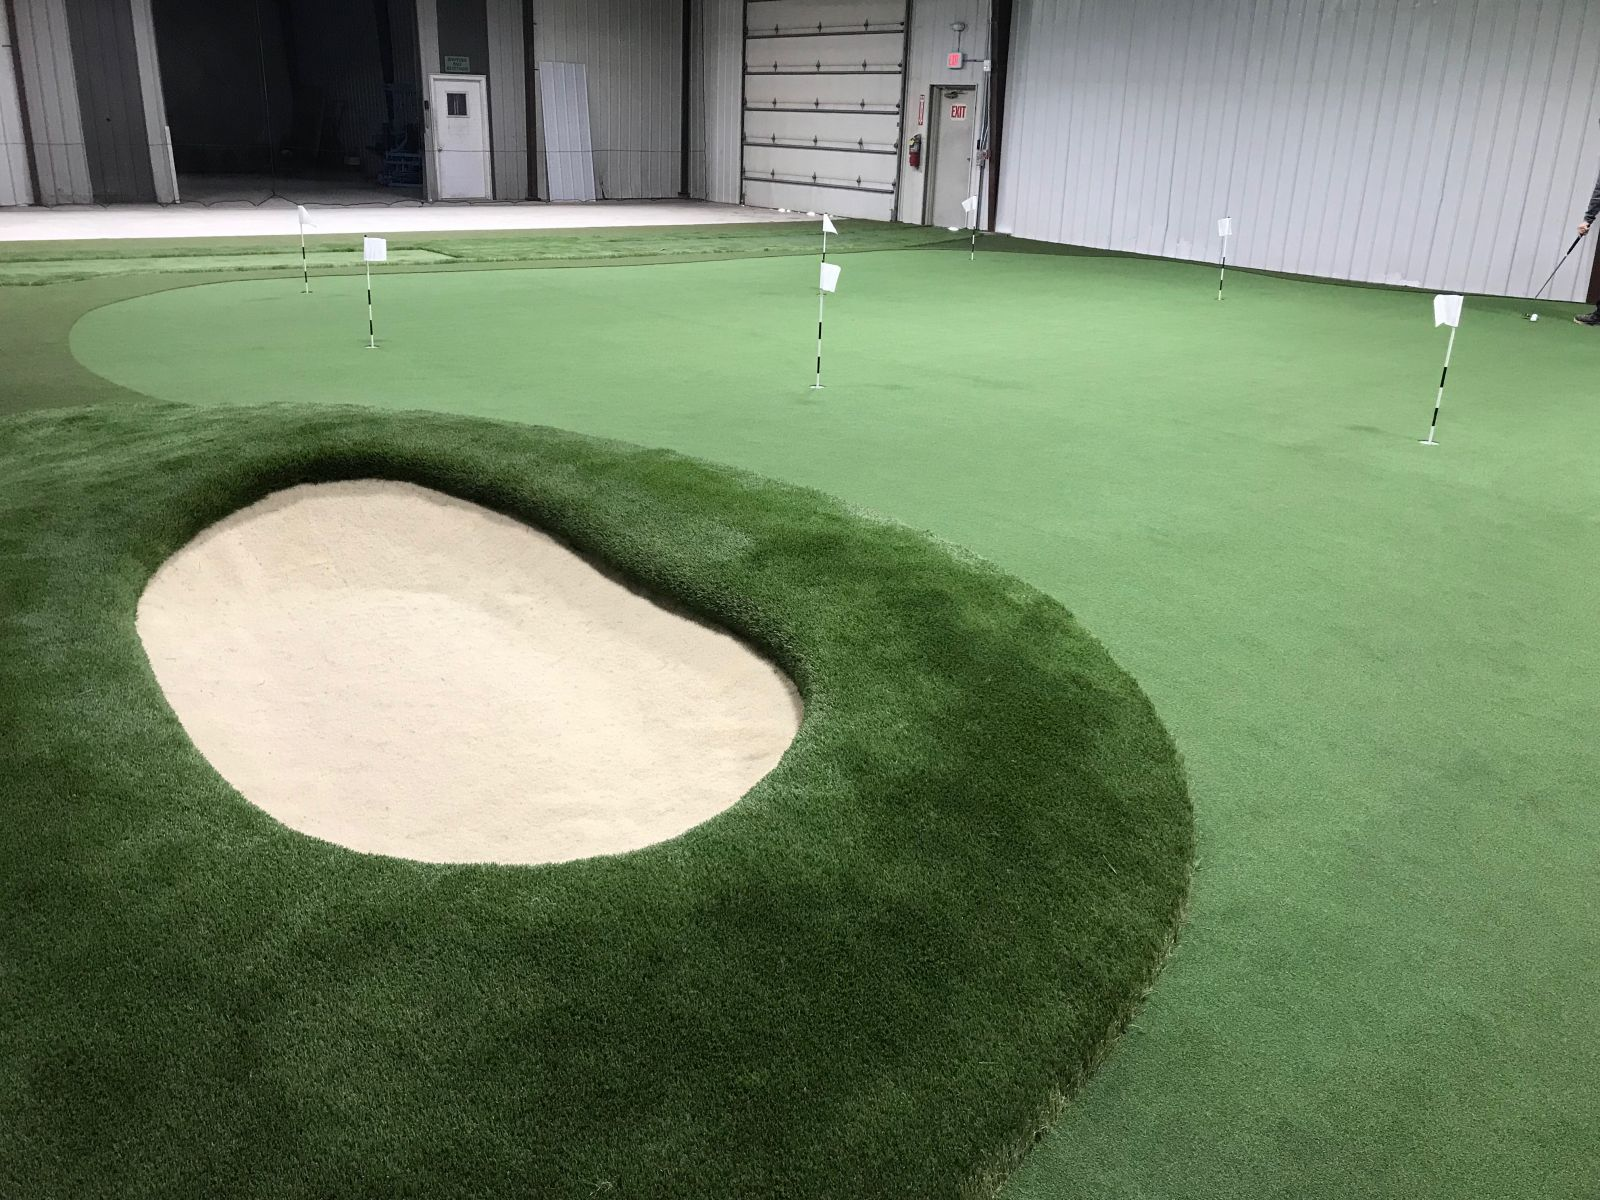 The new indoor putting area